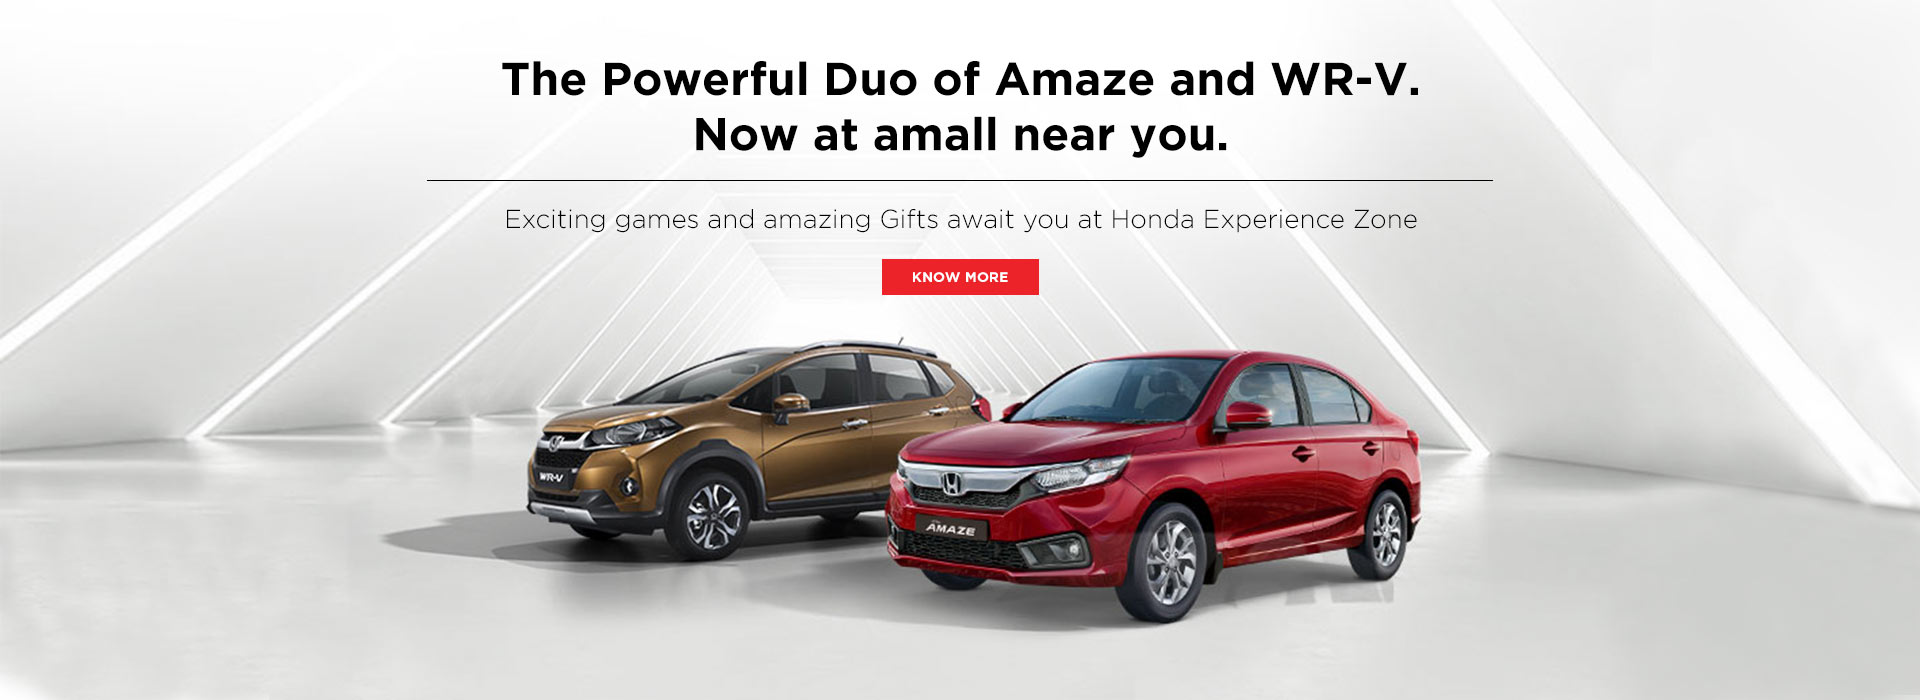 Autokam Honda Authorized New Car Dealership Serving And Servicing